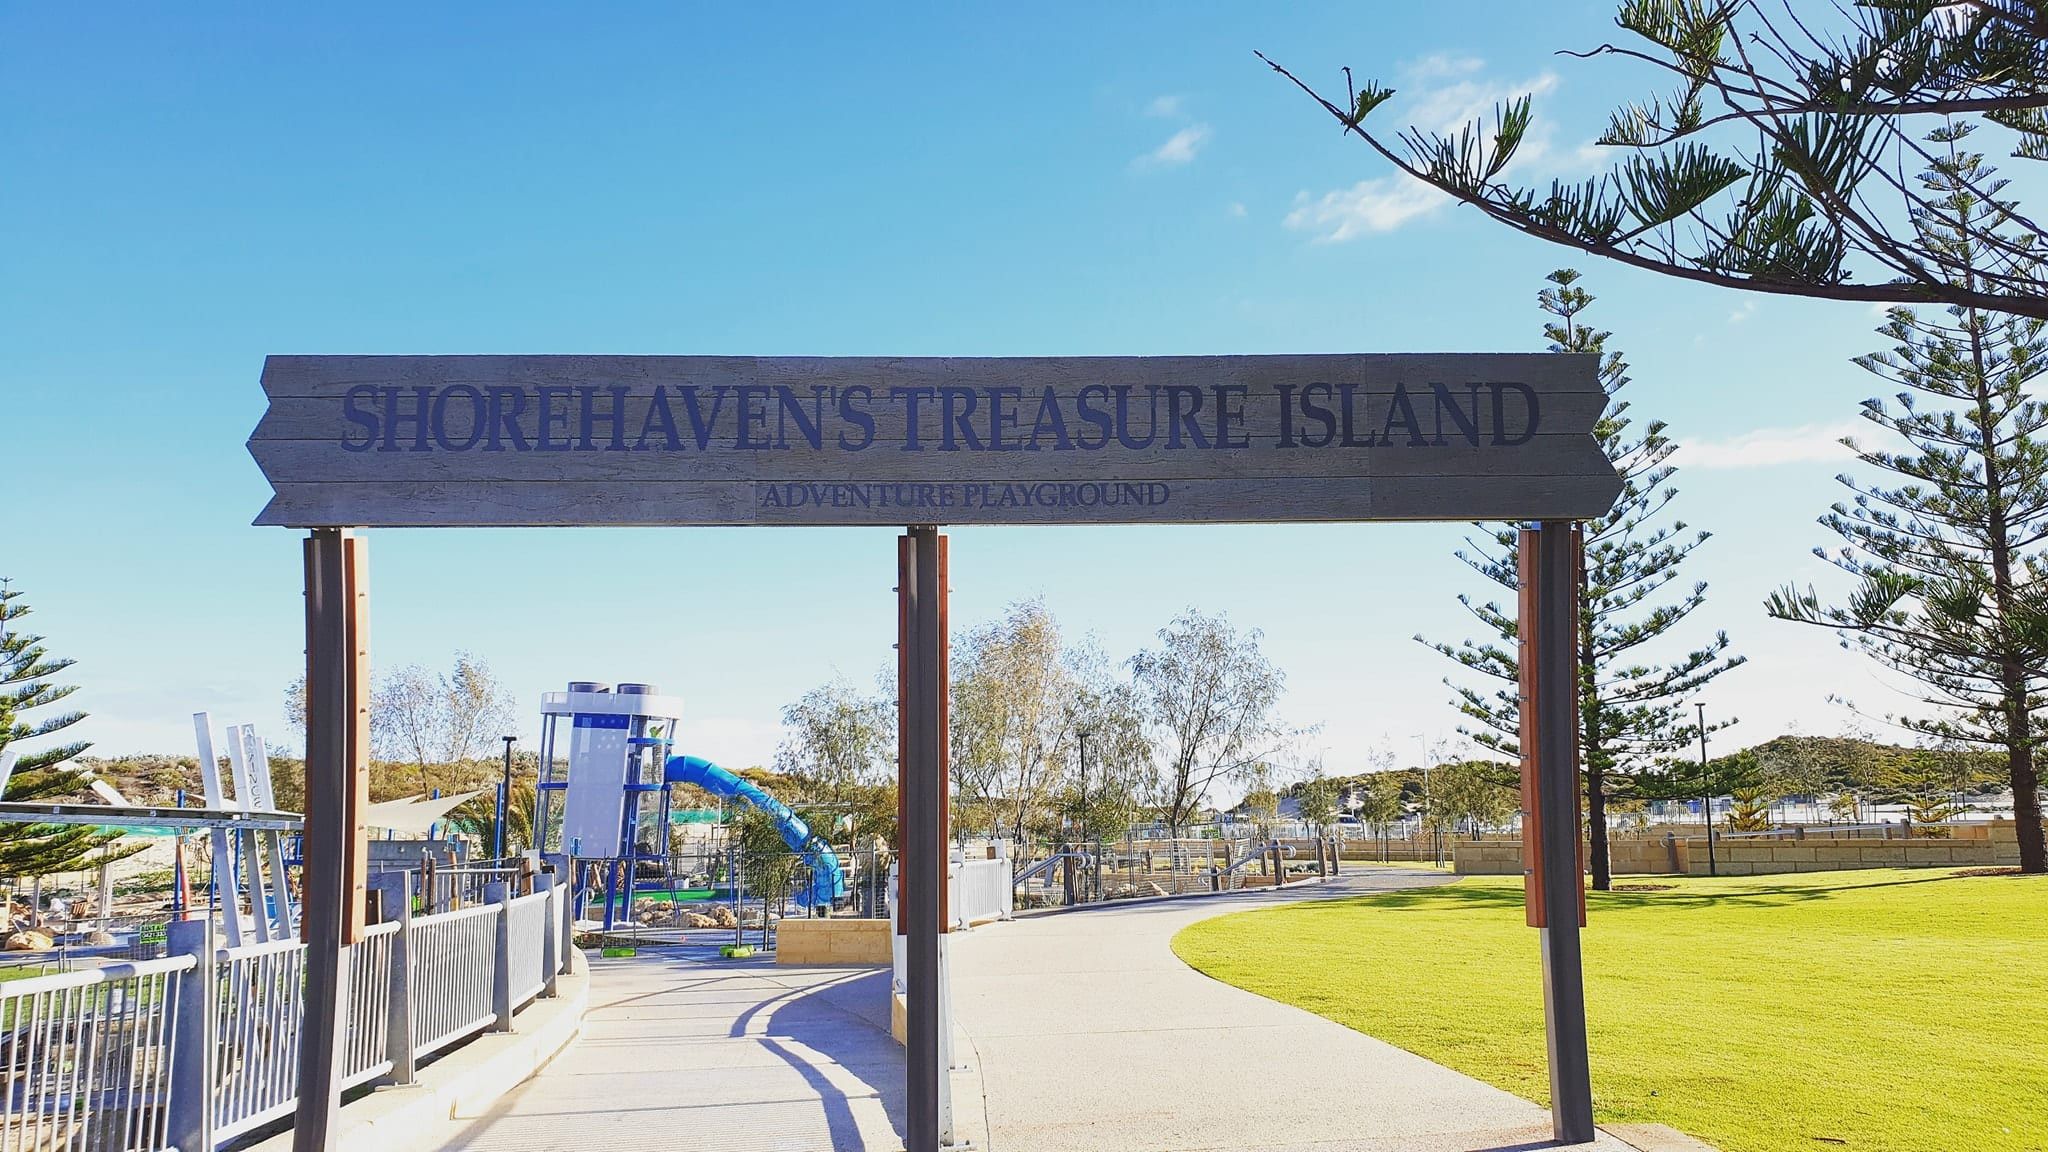 Shorehaven's Treasure Island Adventure Playground, Alkimos